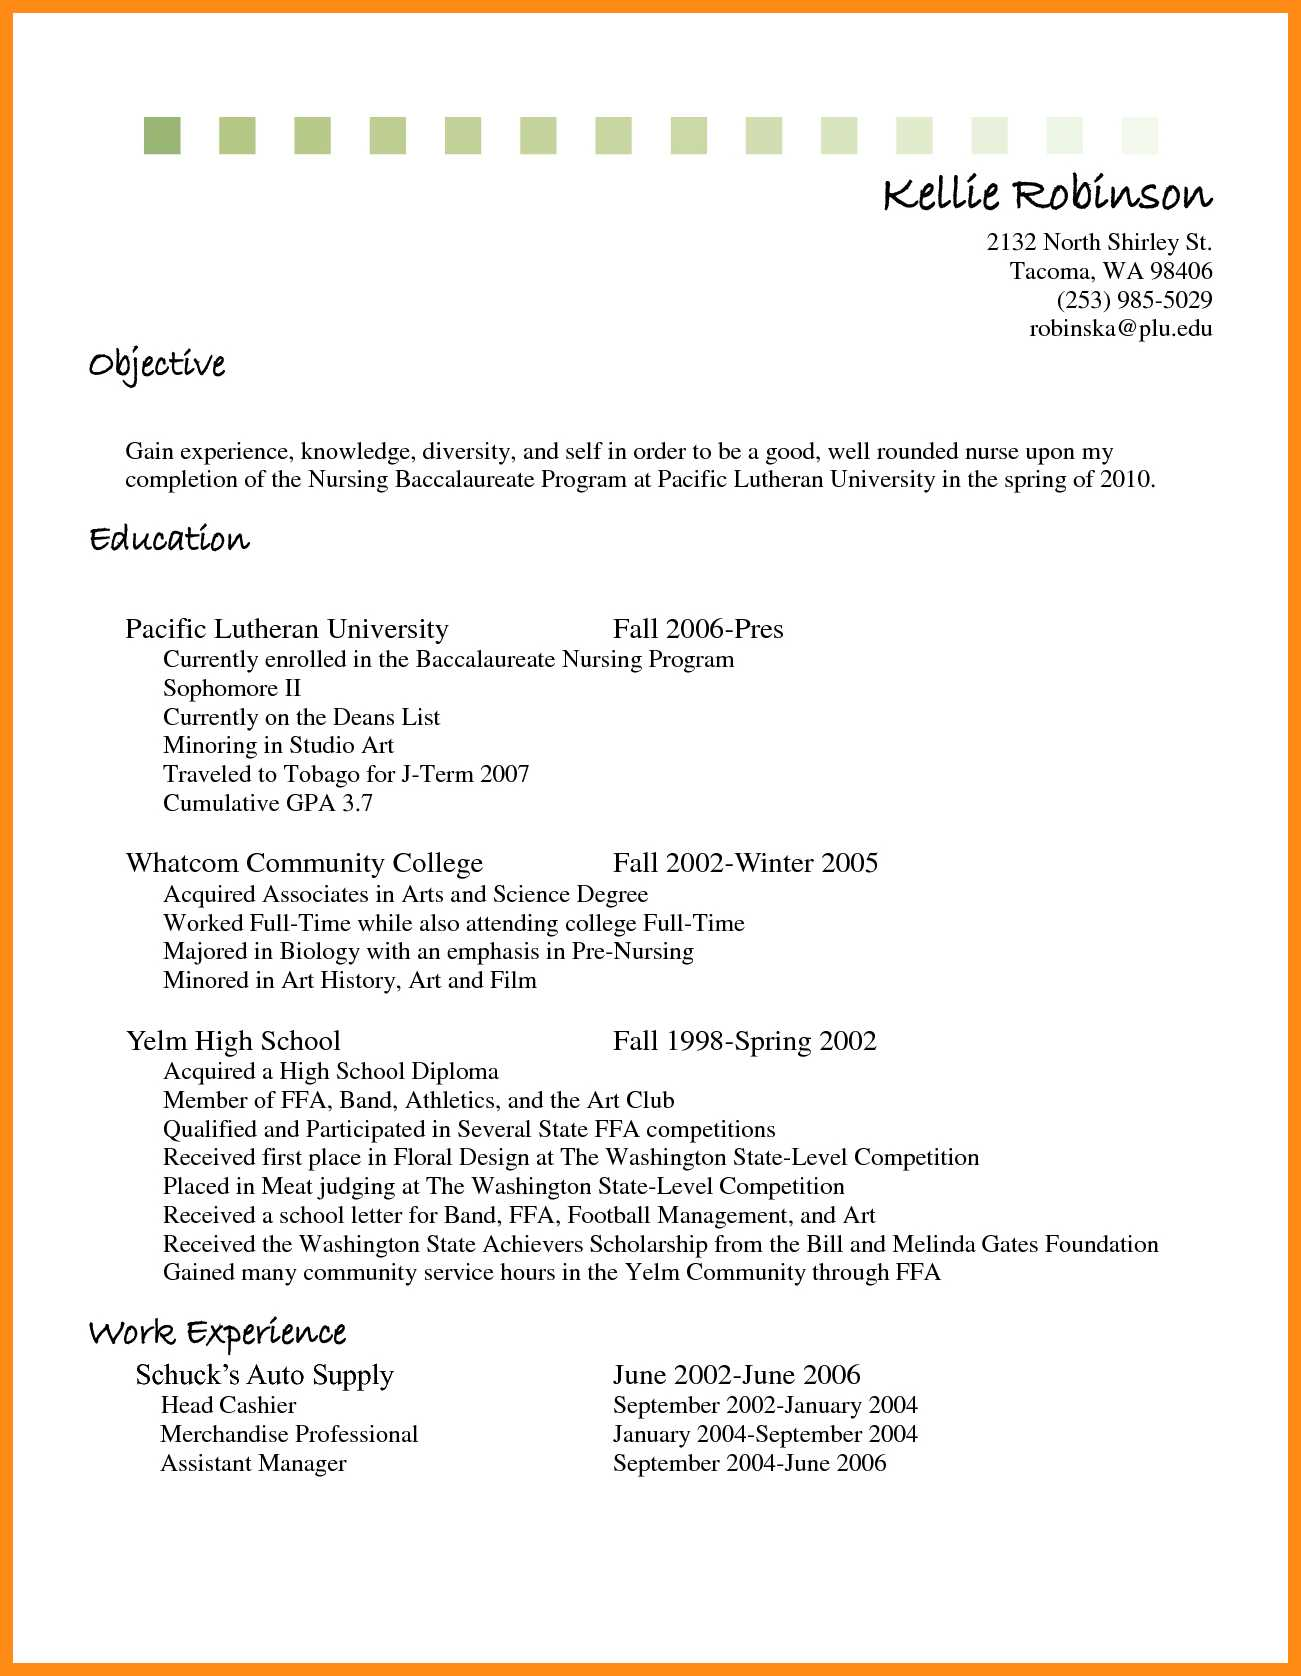 Objective For Resume Biology Resume Objective Examples Retail Resume Template Image Job Objectives New Sales Associate objective for resume|wikiresume.com